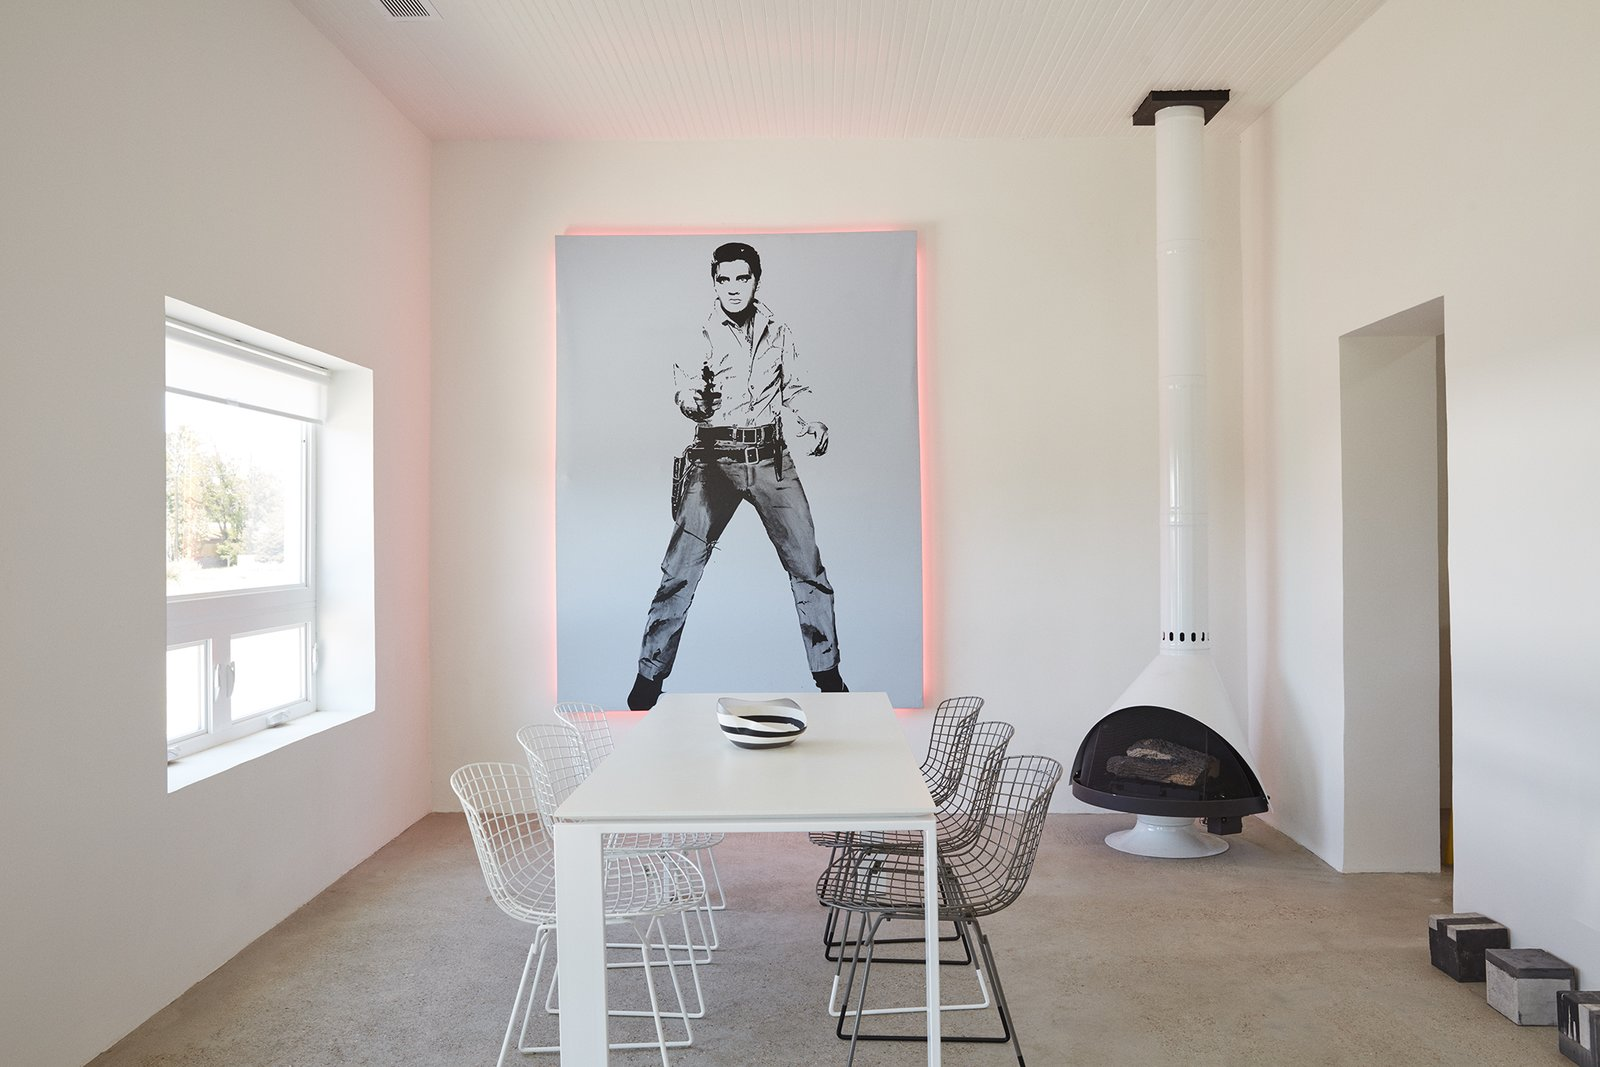 """Everything out here has been something else,"" designer Barbara Hill says of Marfa, Texas. It's certainly true of her casita, which was formerly a grocery store: The 1,200-square-foot home is filled with reworked pieces, including <br>the Elvis artwork she embellished with pink lights fabricated by the Neon Gallery in Houston and the <br>refurbished Bertoia chairs from <br>Cast + Crew. The minimal color <br>palette is echoed in the freestanding <br>Malm fireplace and the concrete floor sculptures by William Vizcarra from Wrong Marfa."